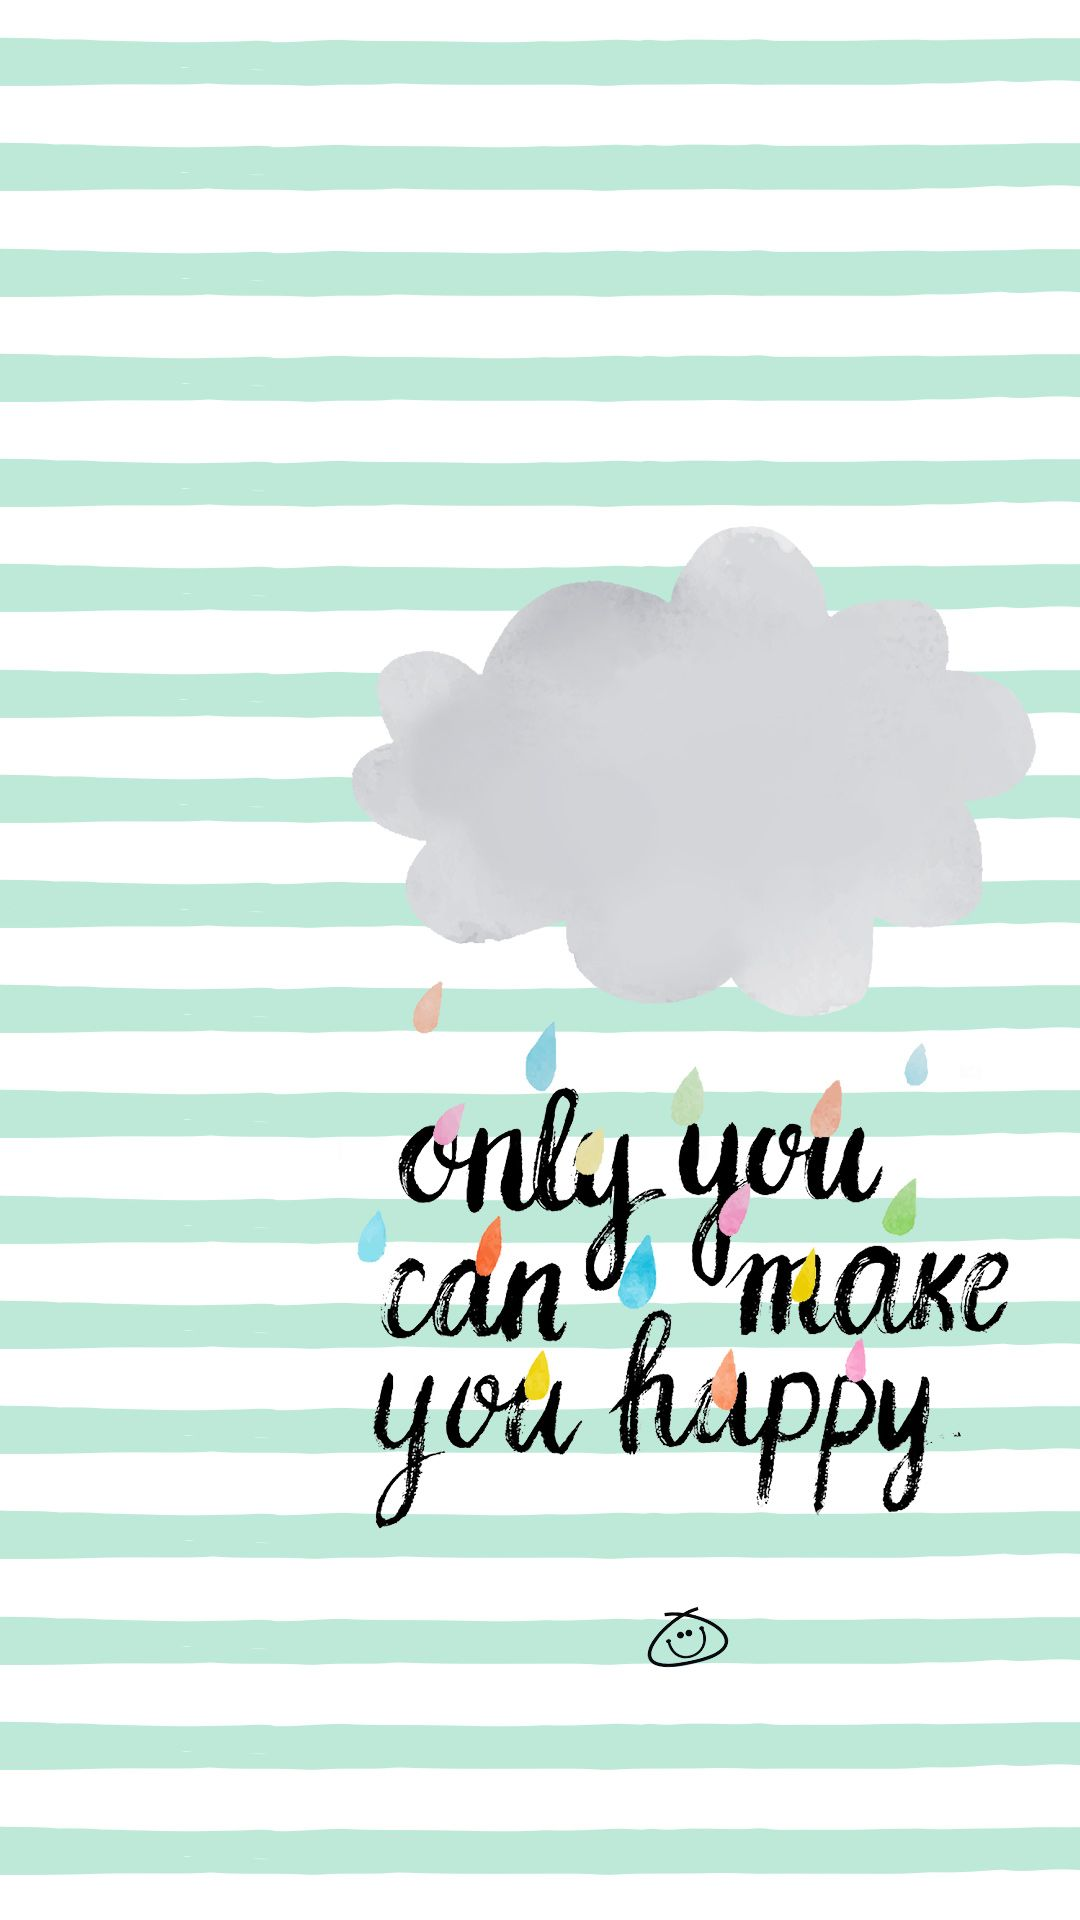 Free Colorful Smartphone Wallpaper Only You Can Make You Happy Colorful Zone Cute Quotes Wallpaper Quotes Positive Quotes